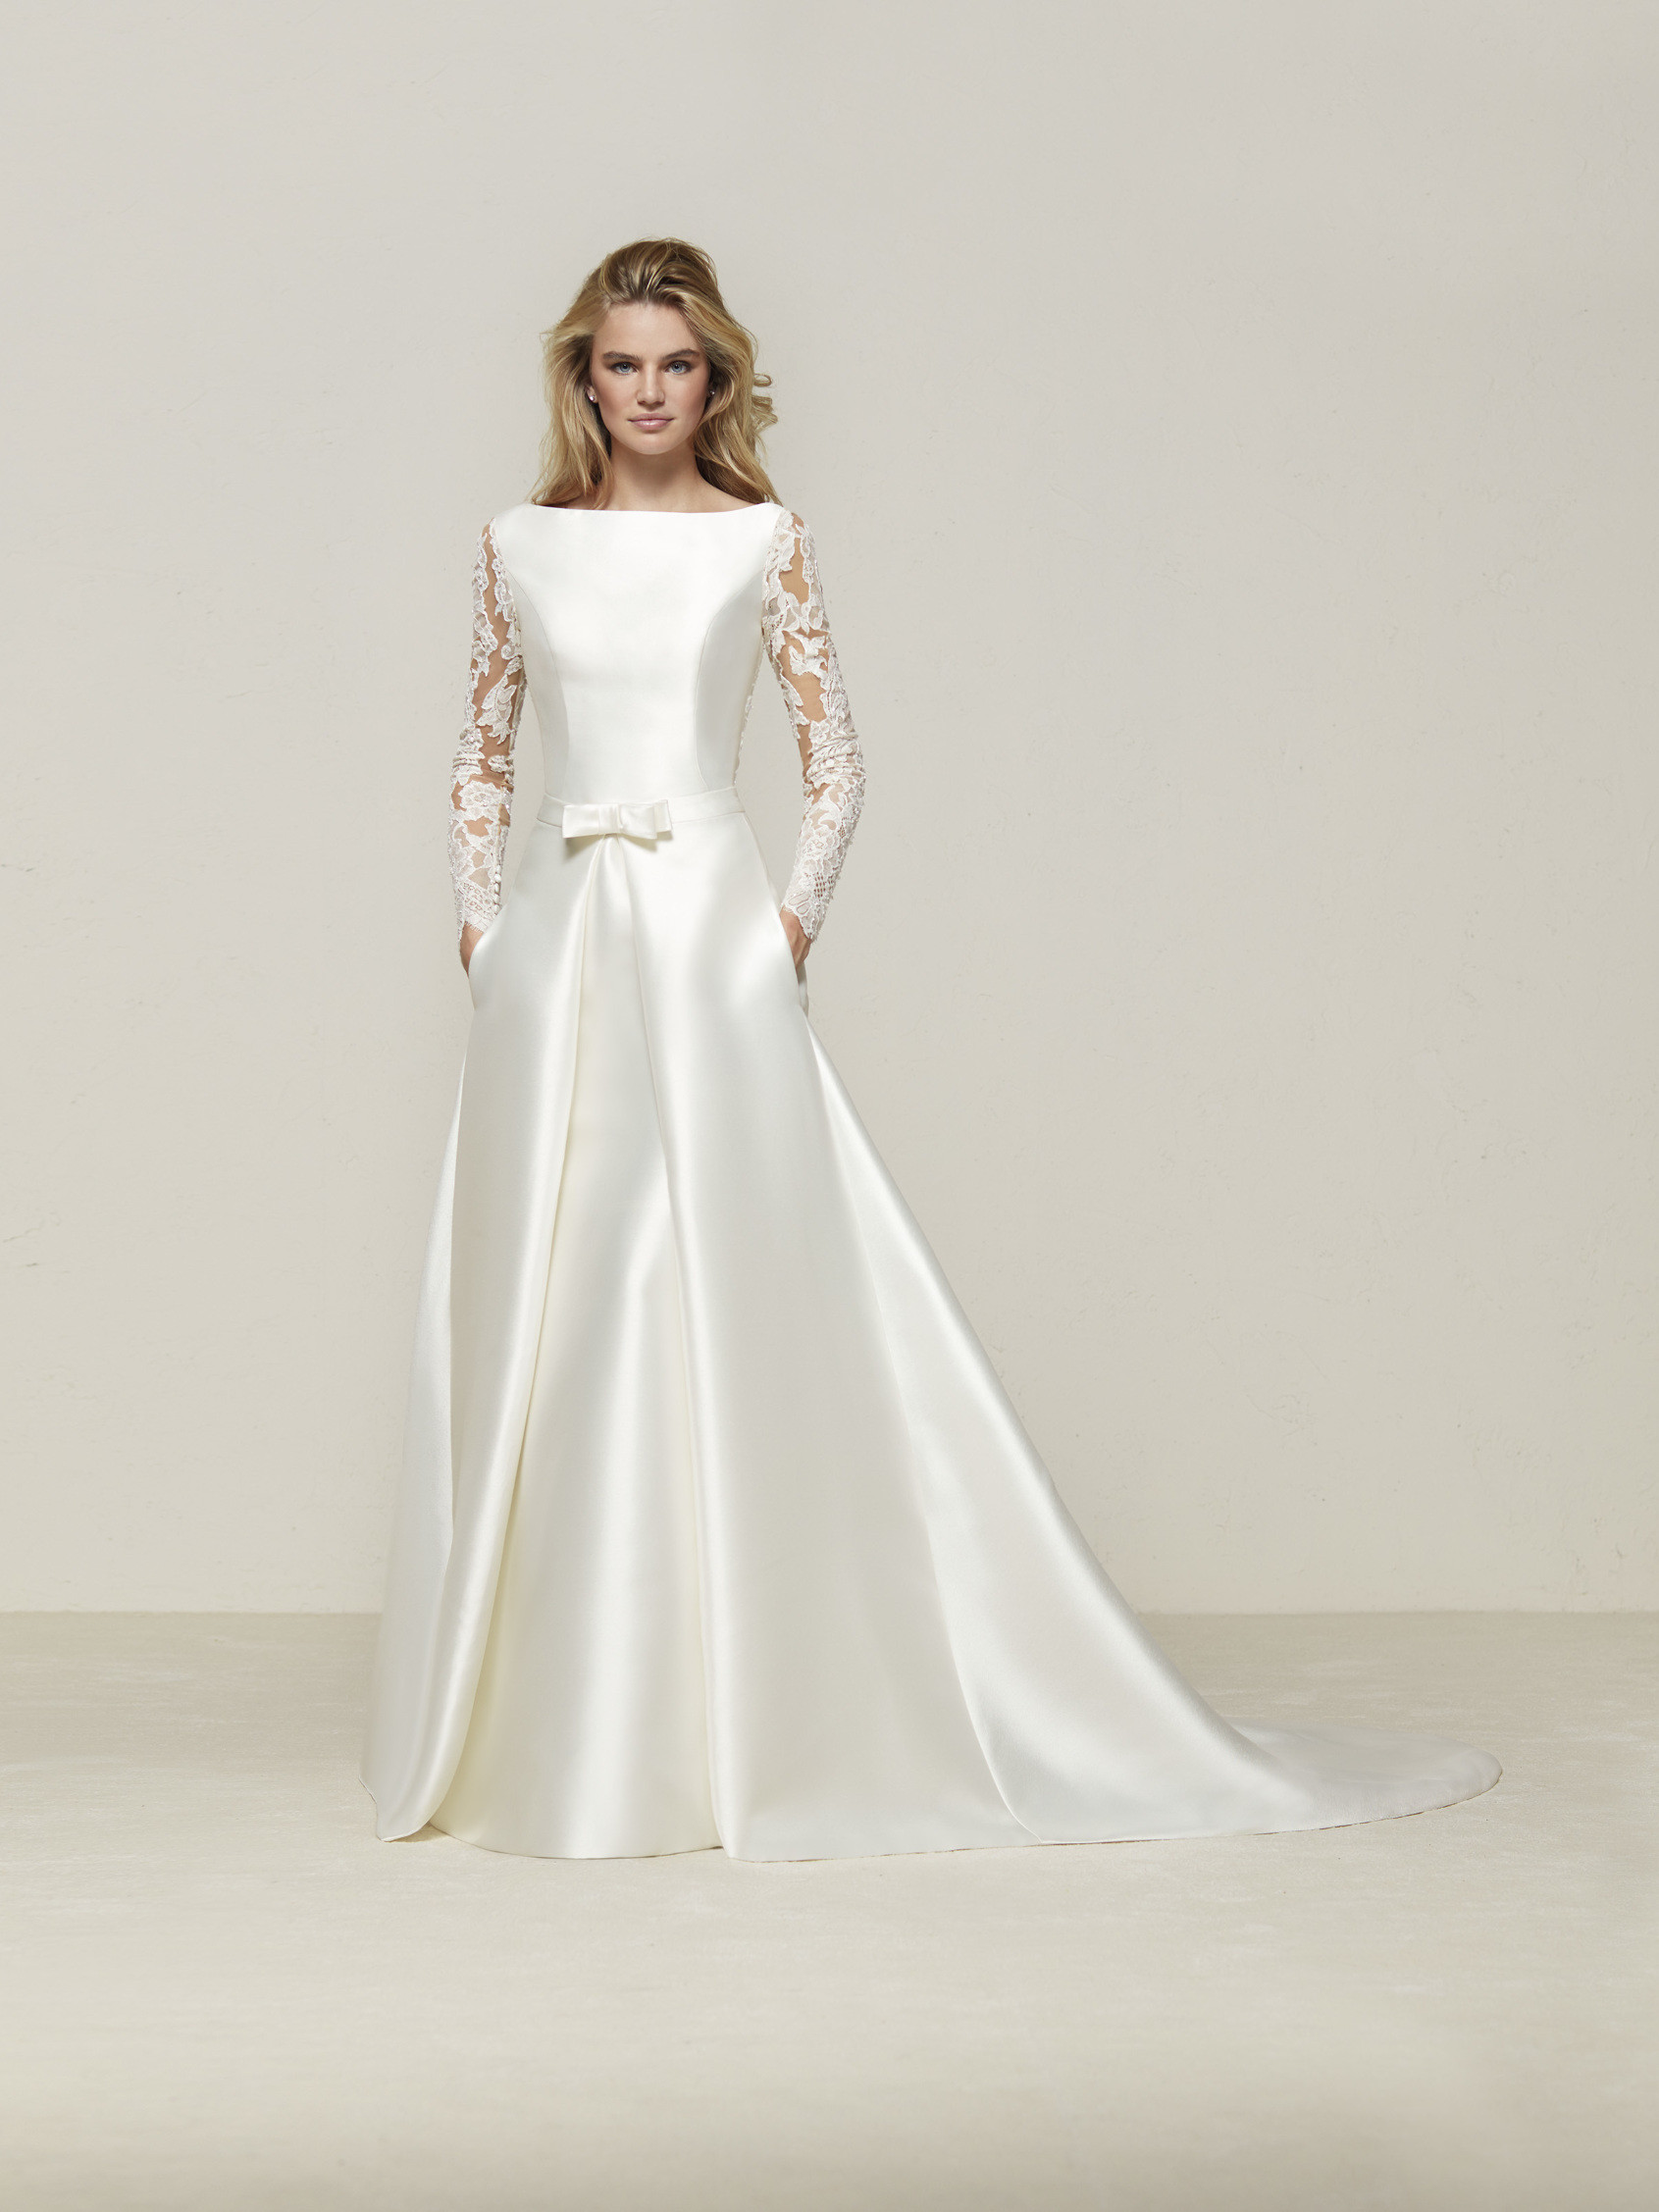 Mermaid wedding dress with long sleeves and transparent back - Drales - Pronovias